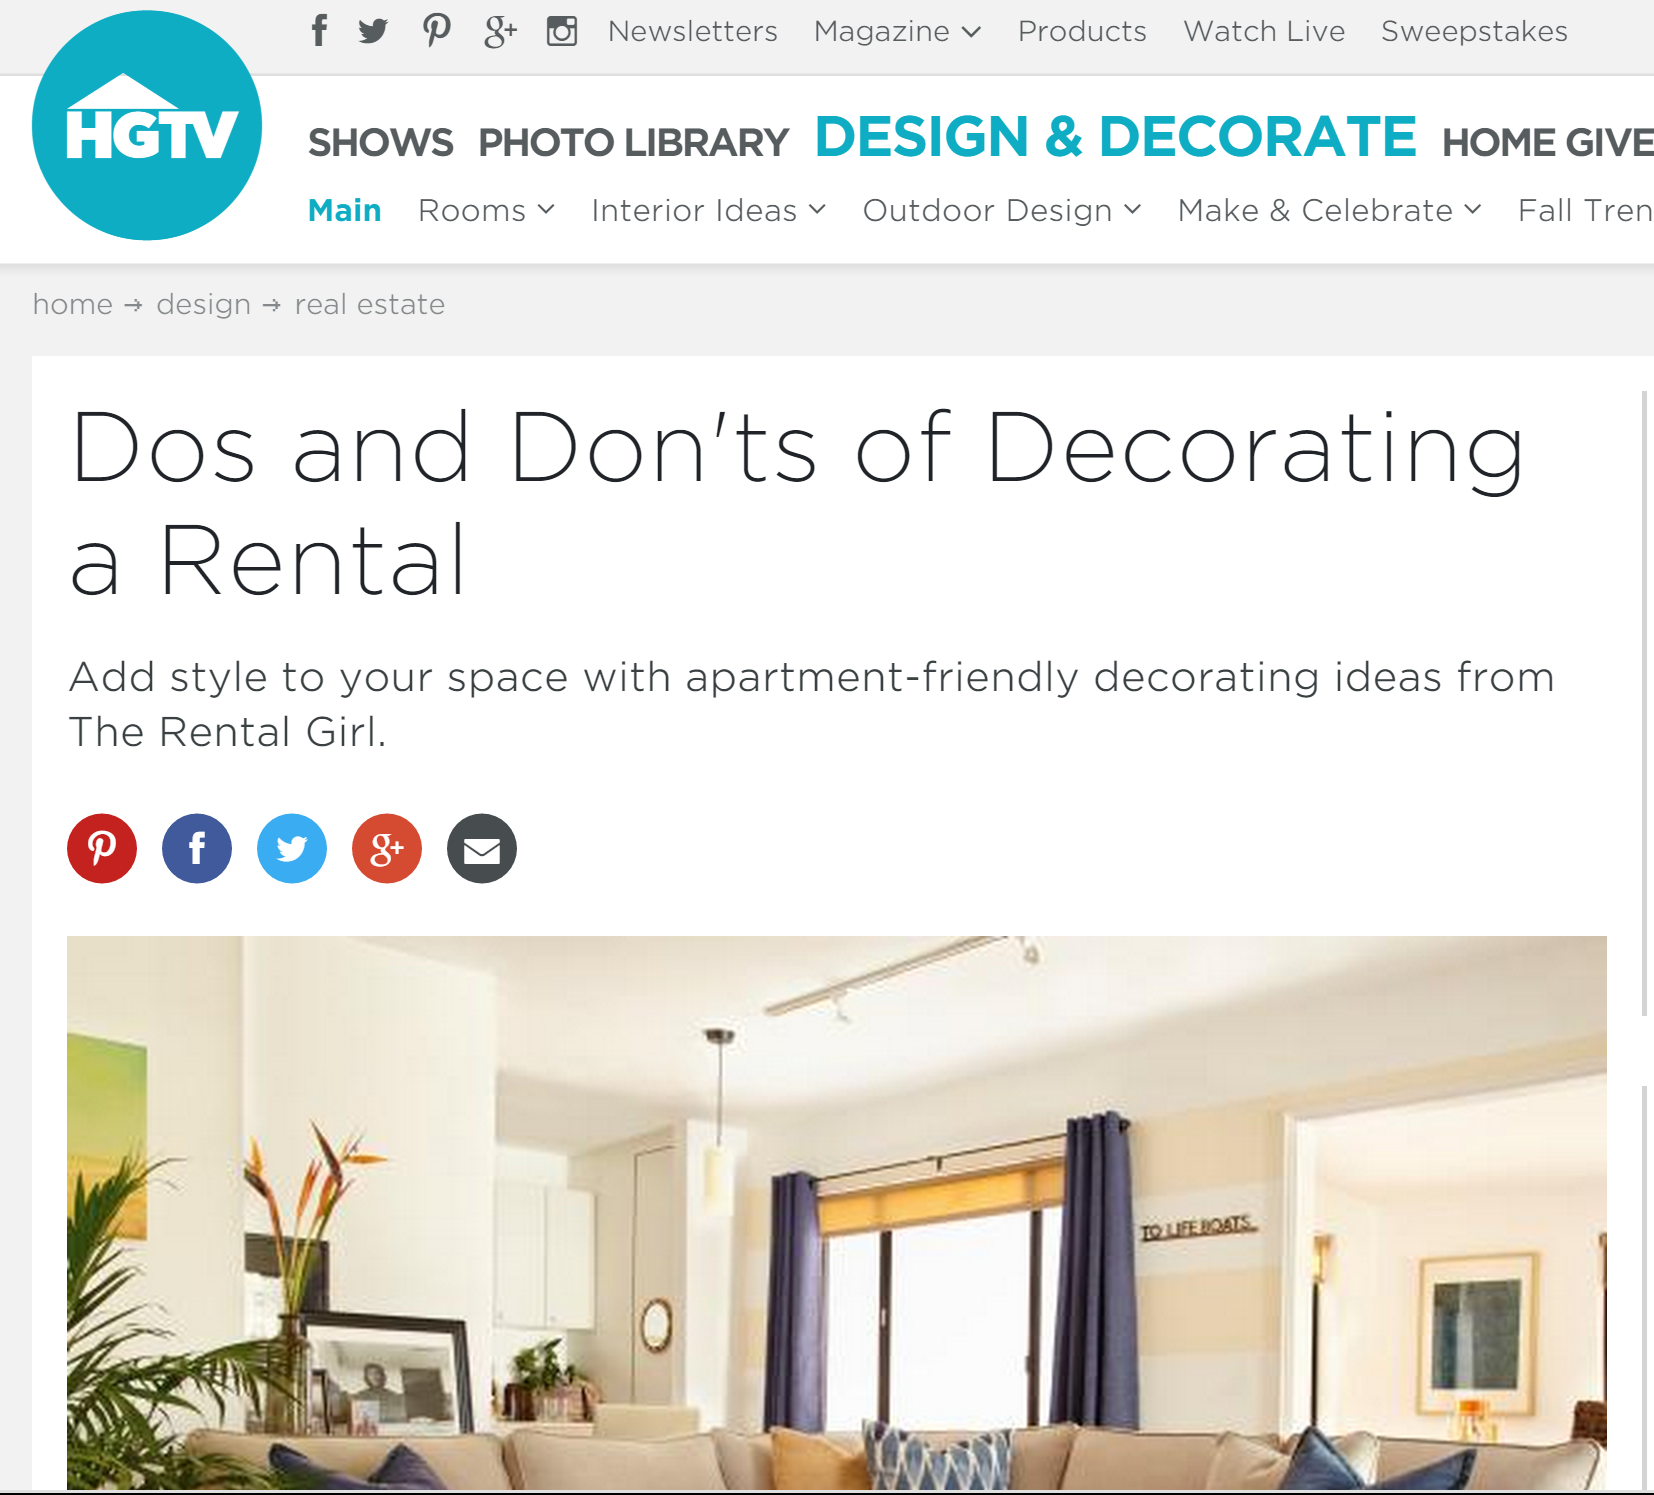 HGTV's Do's and Don'ts